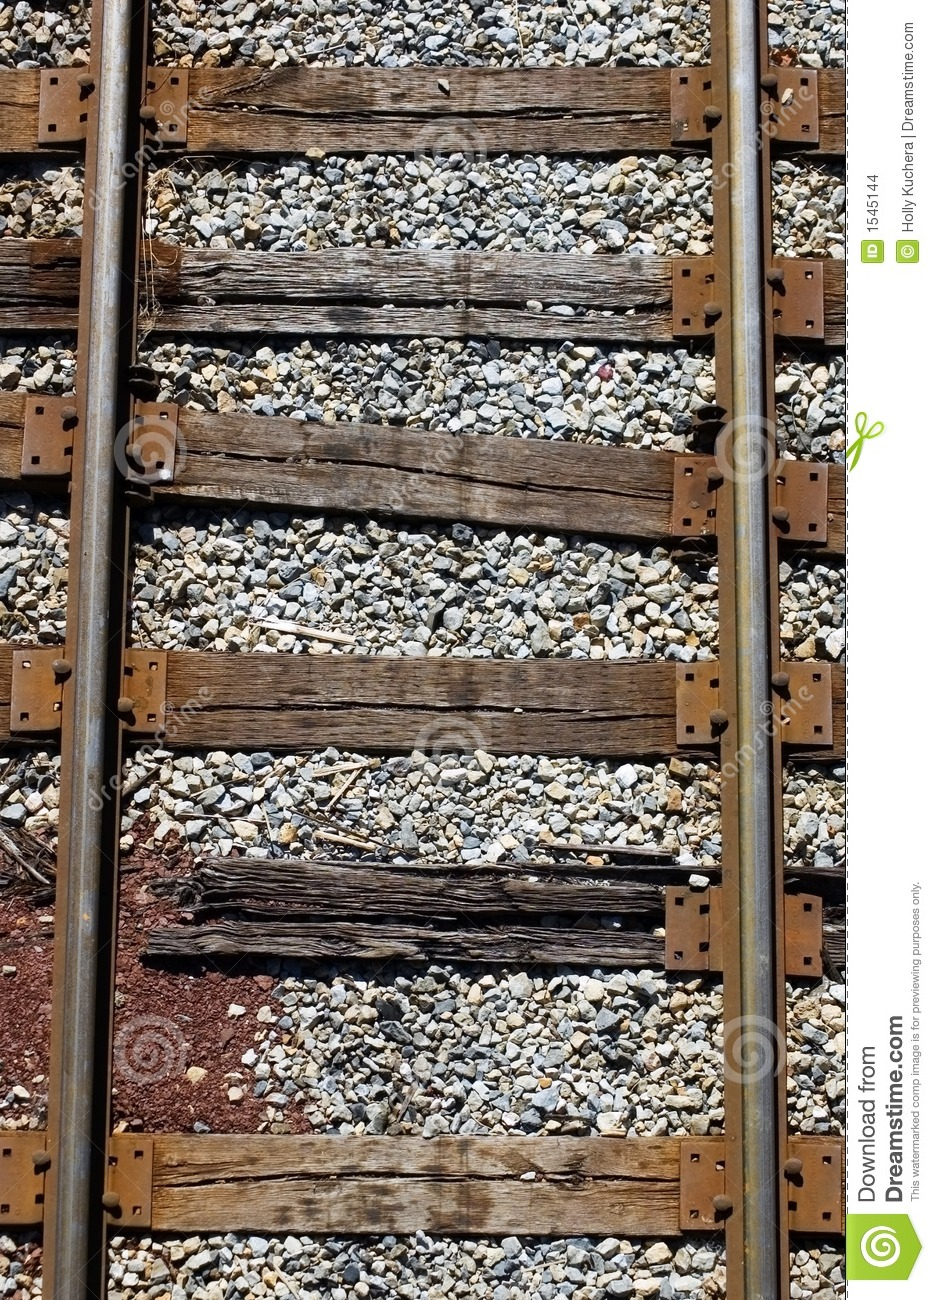 Railroad Tracks from Above